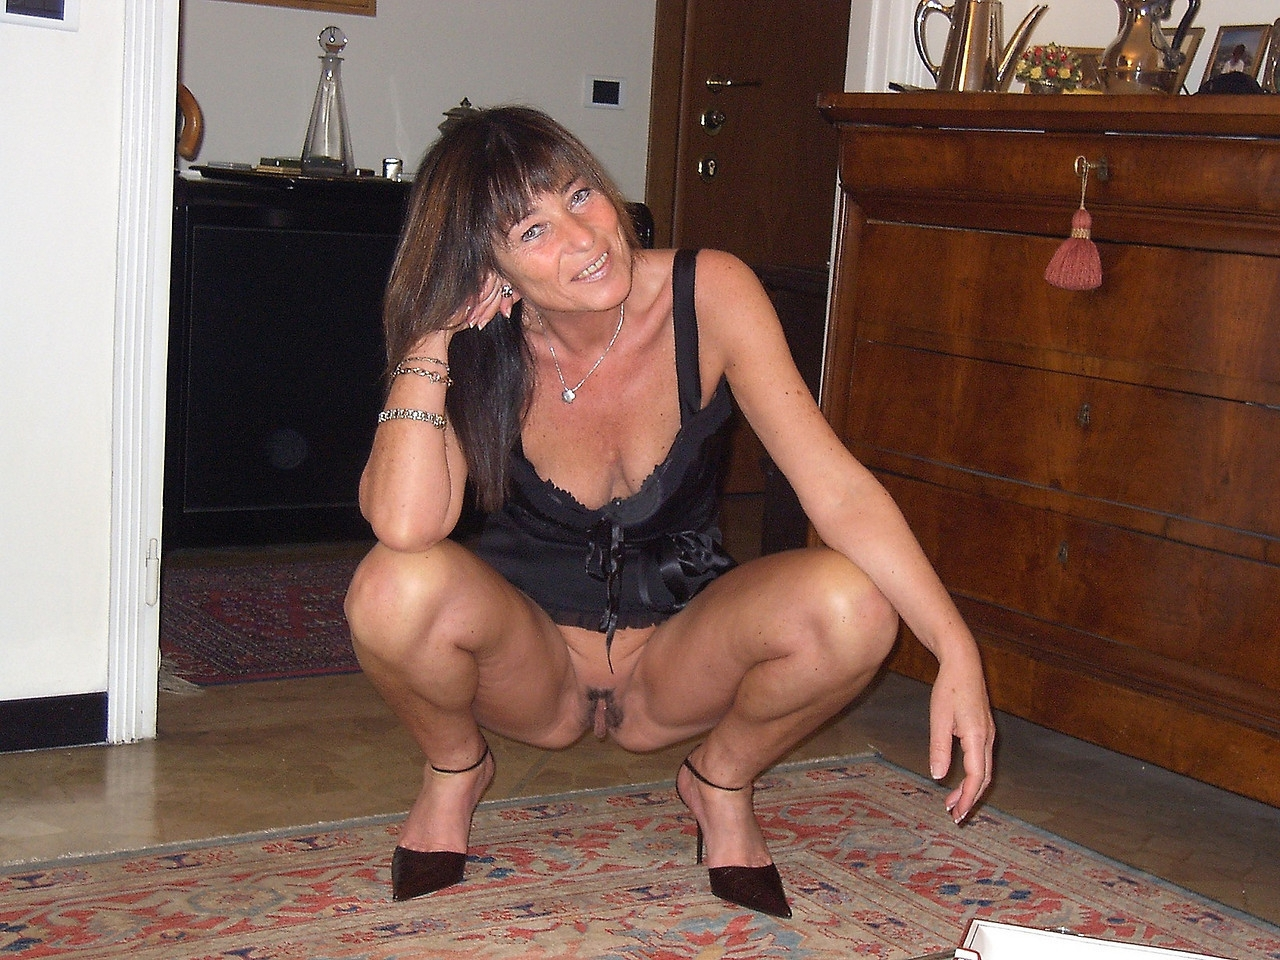 mature french porn escort girls vip paris